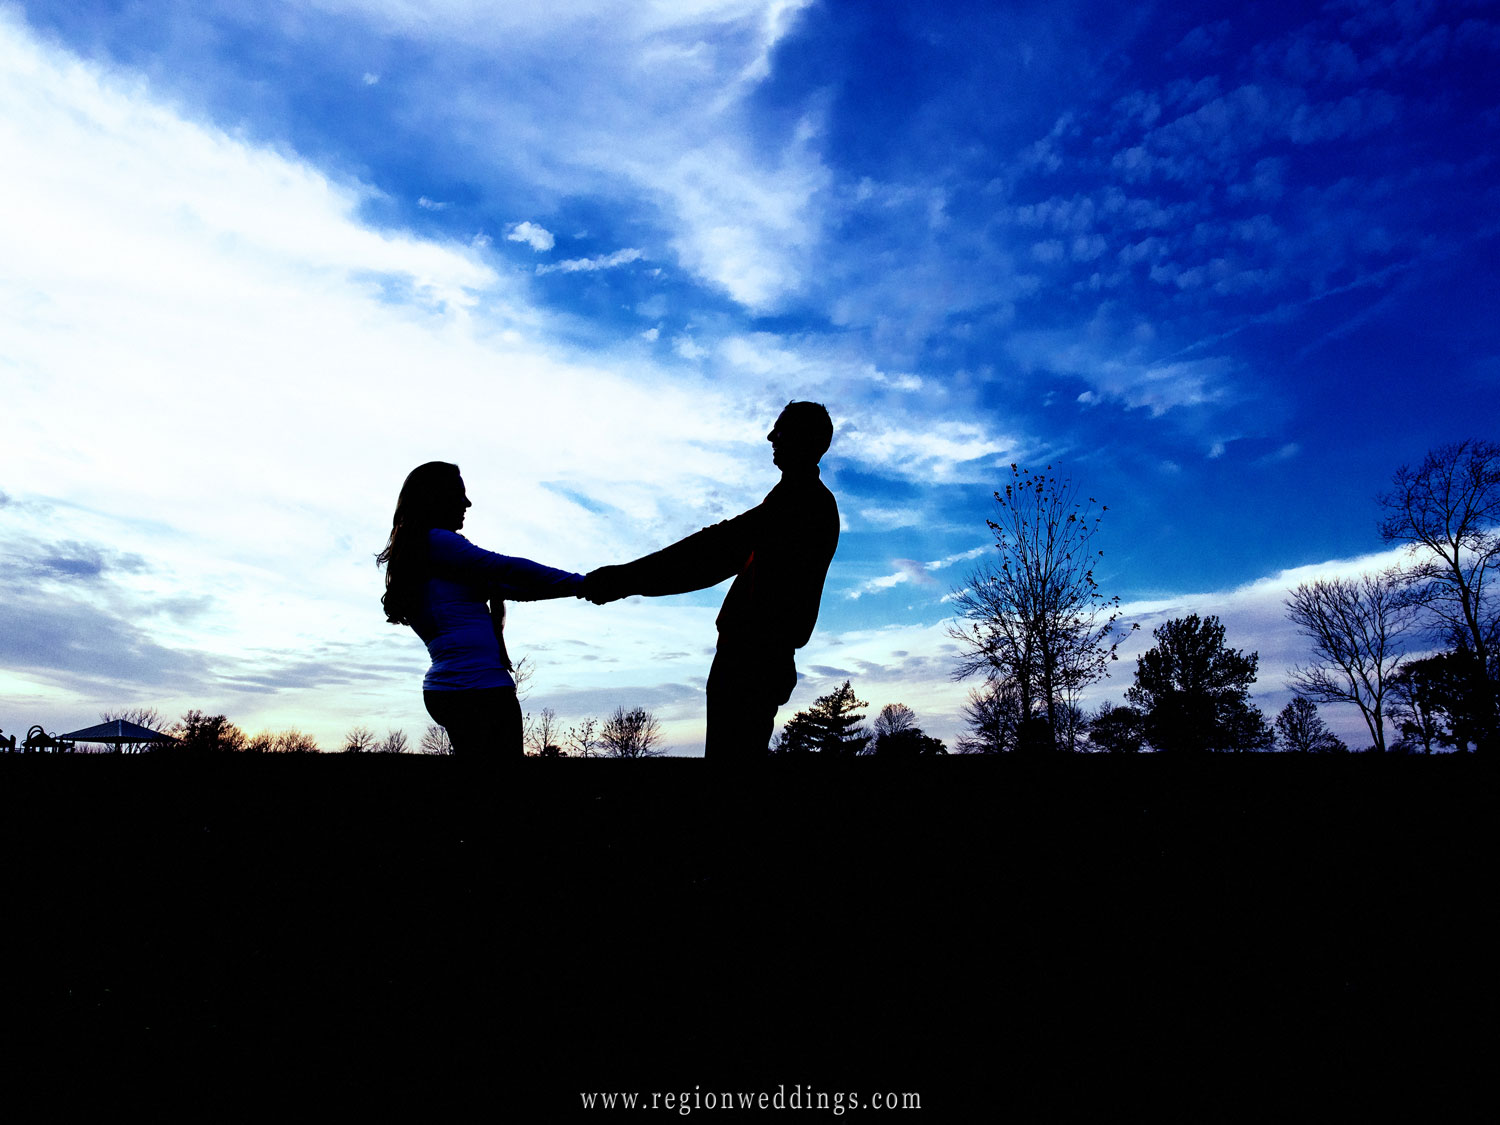 A couple holds hand while leaning away from each other against a blue sky.